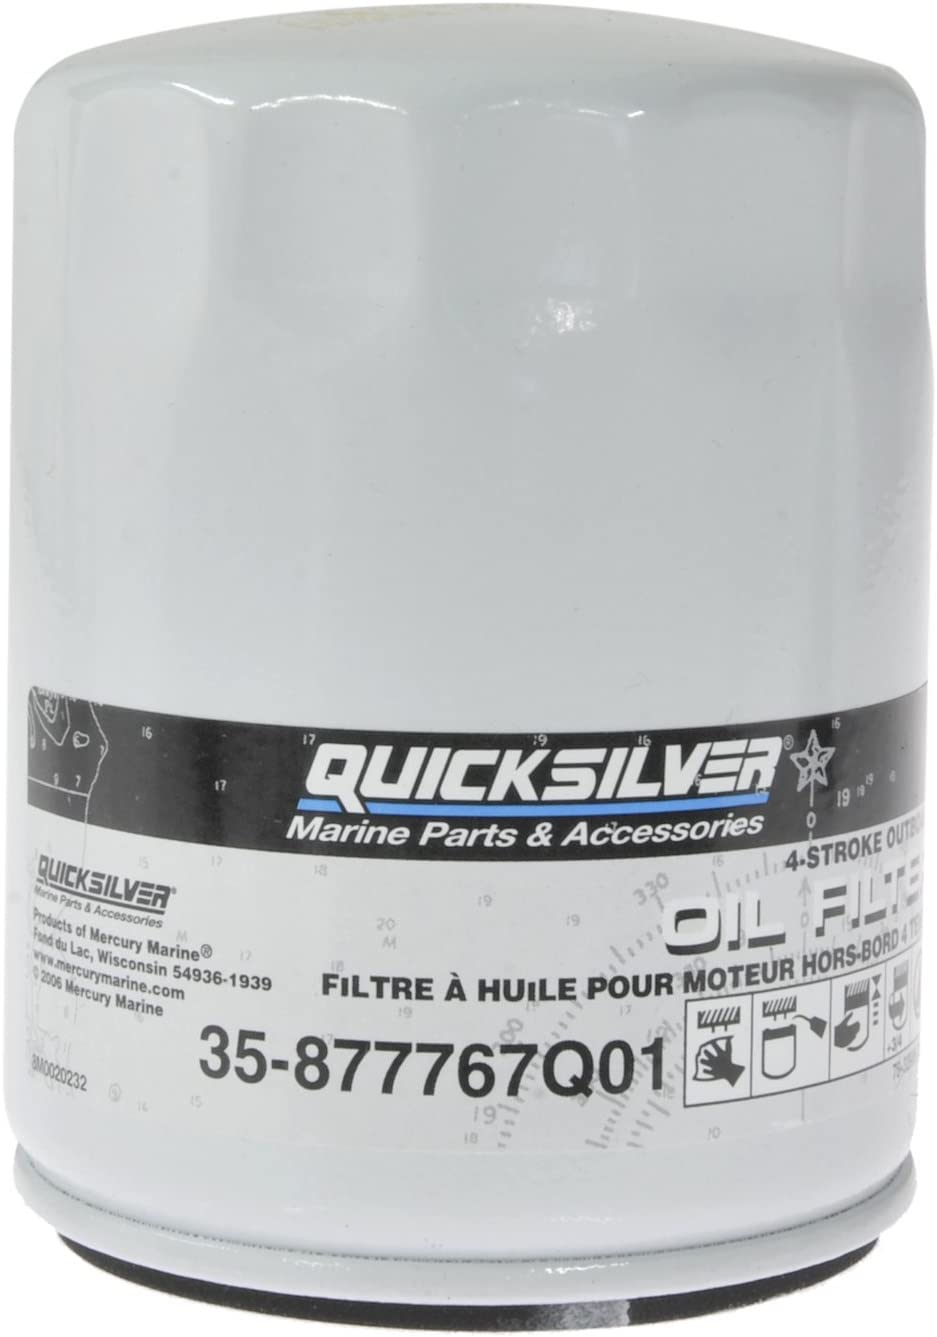 Quicksilver 877767Q01 Oil Filter - Verado In-Line 4-Cylinder 135 HP through 200 HP Outboards